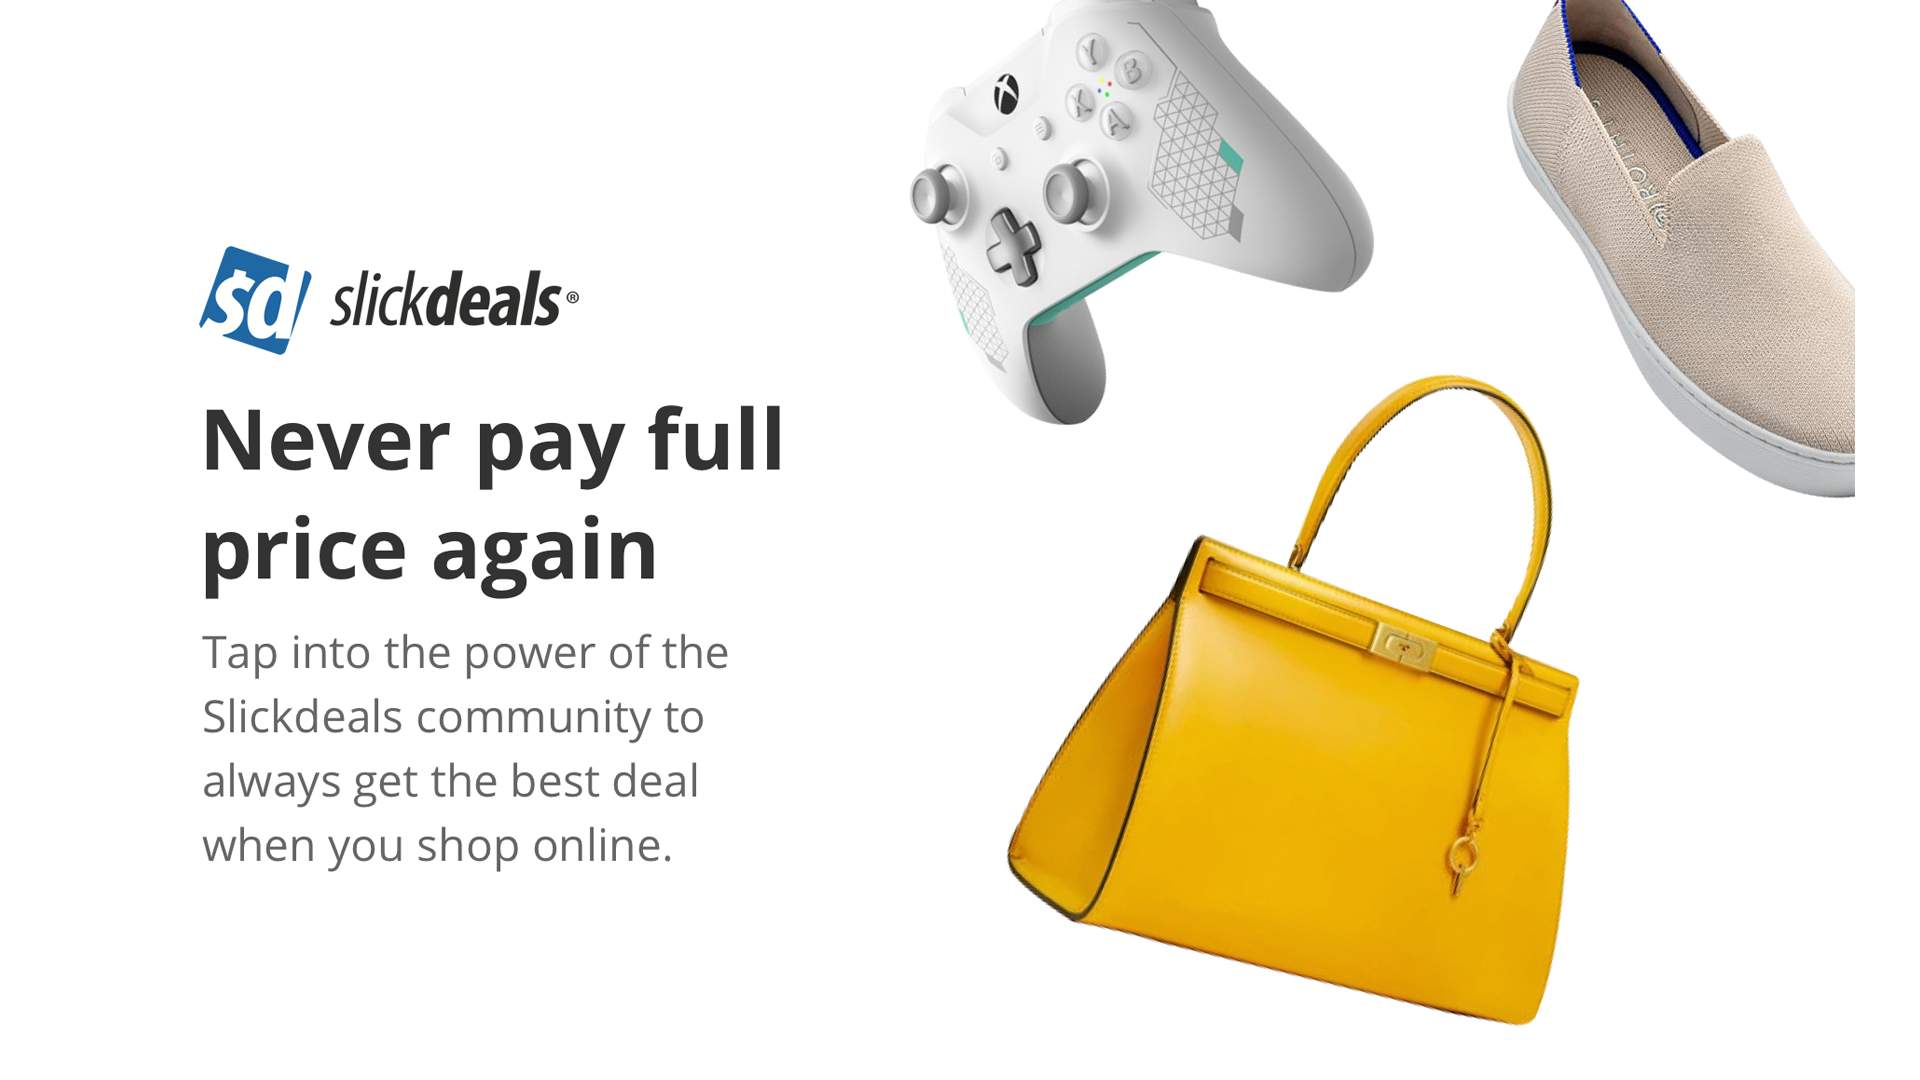 An illustration of Slickdeals saving money on video games, shoes, and handbags.